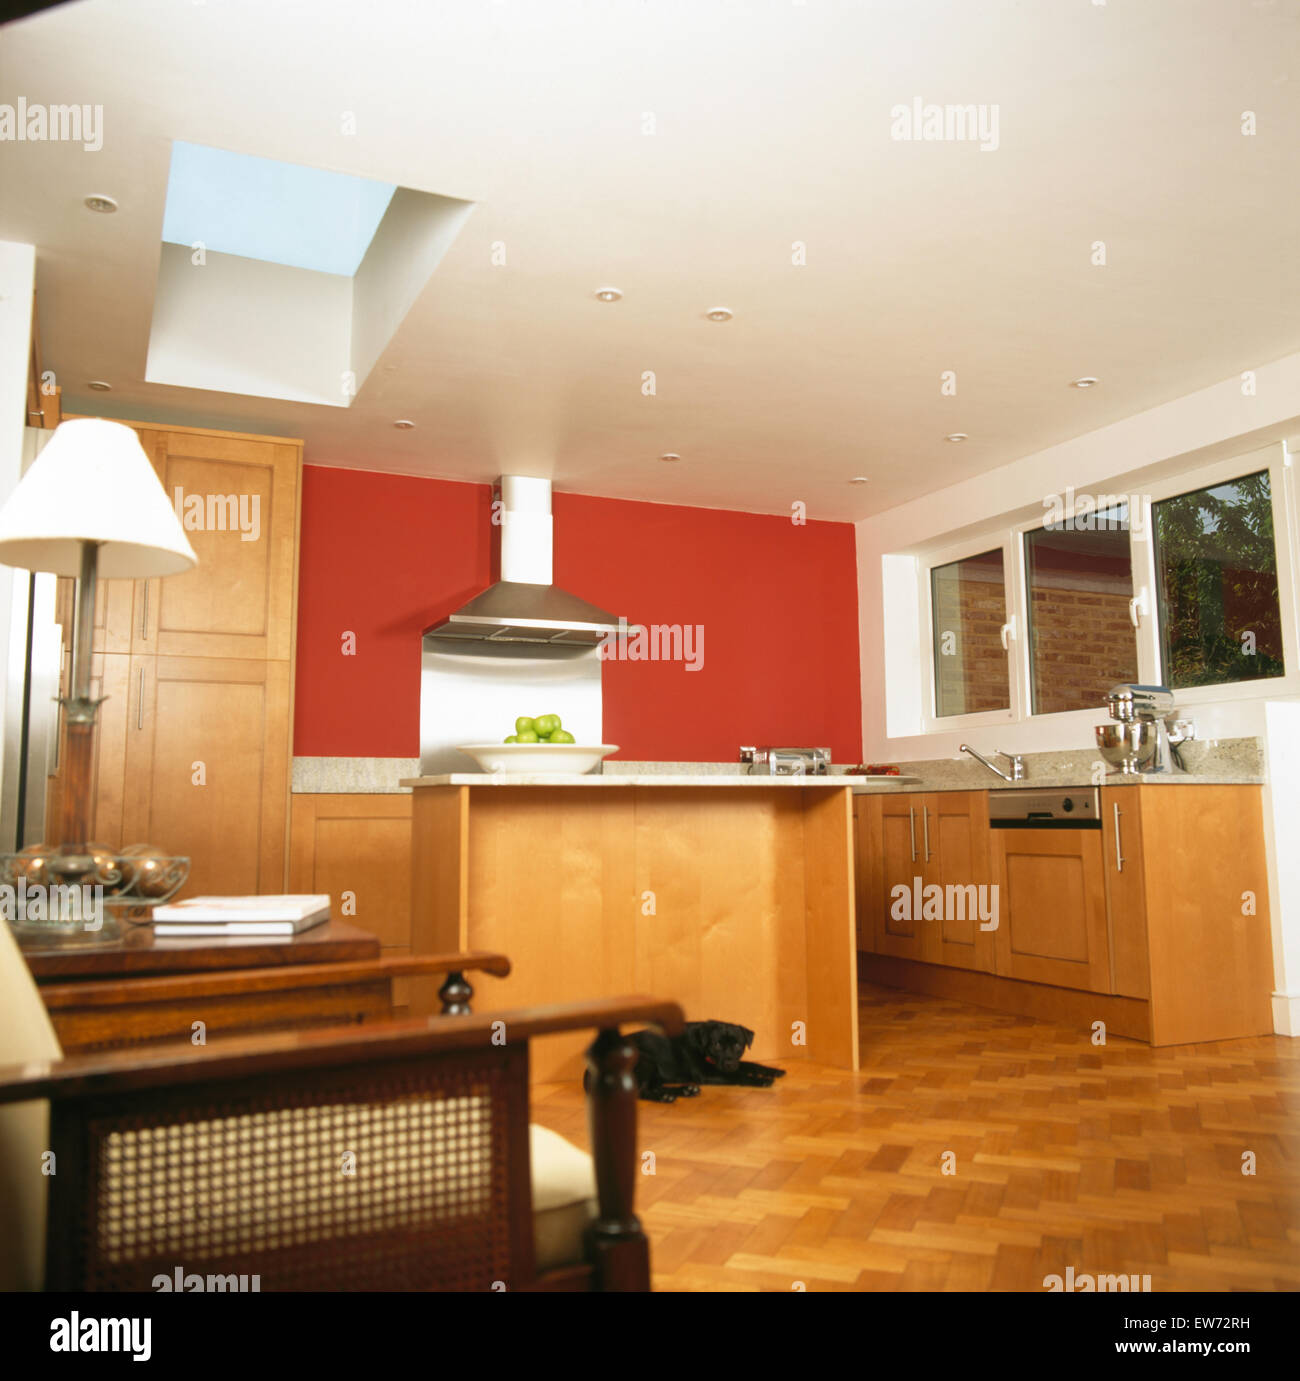 Parquet Flooring Kitchen Parquet Flooring In Modern Kitchen Extension With Red Wall And